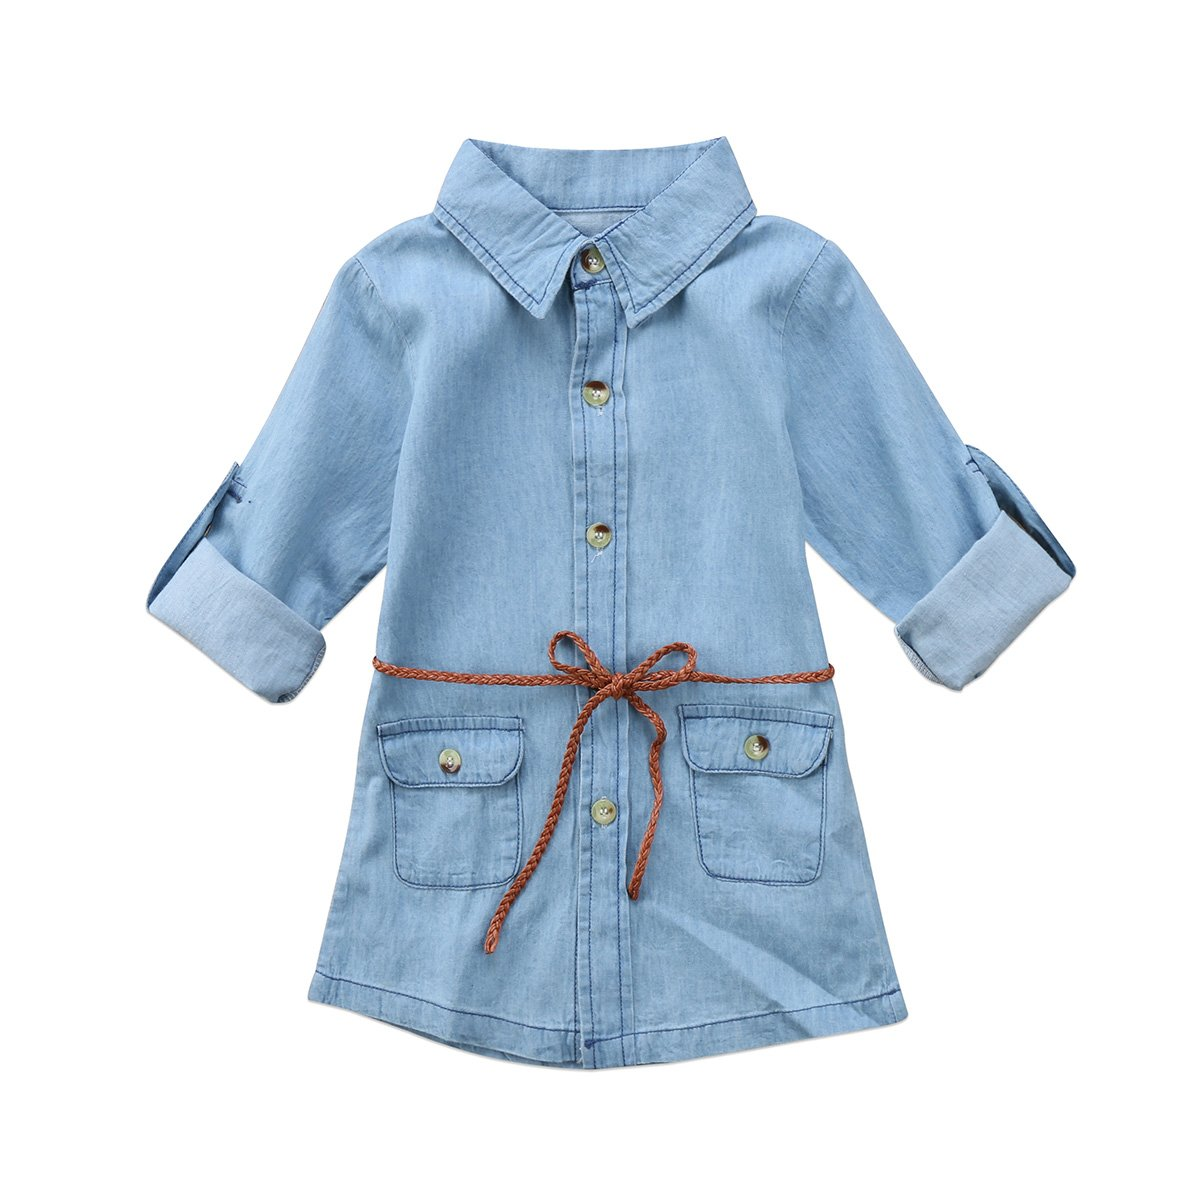 BiggerStore Fashion Kids Toddler Baby Girl Belted Denim Dress Above Knee Length 2-7T (Light Blue, 3-4 Years)